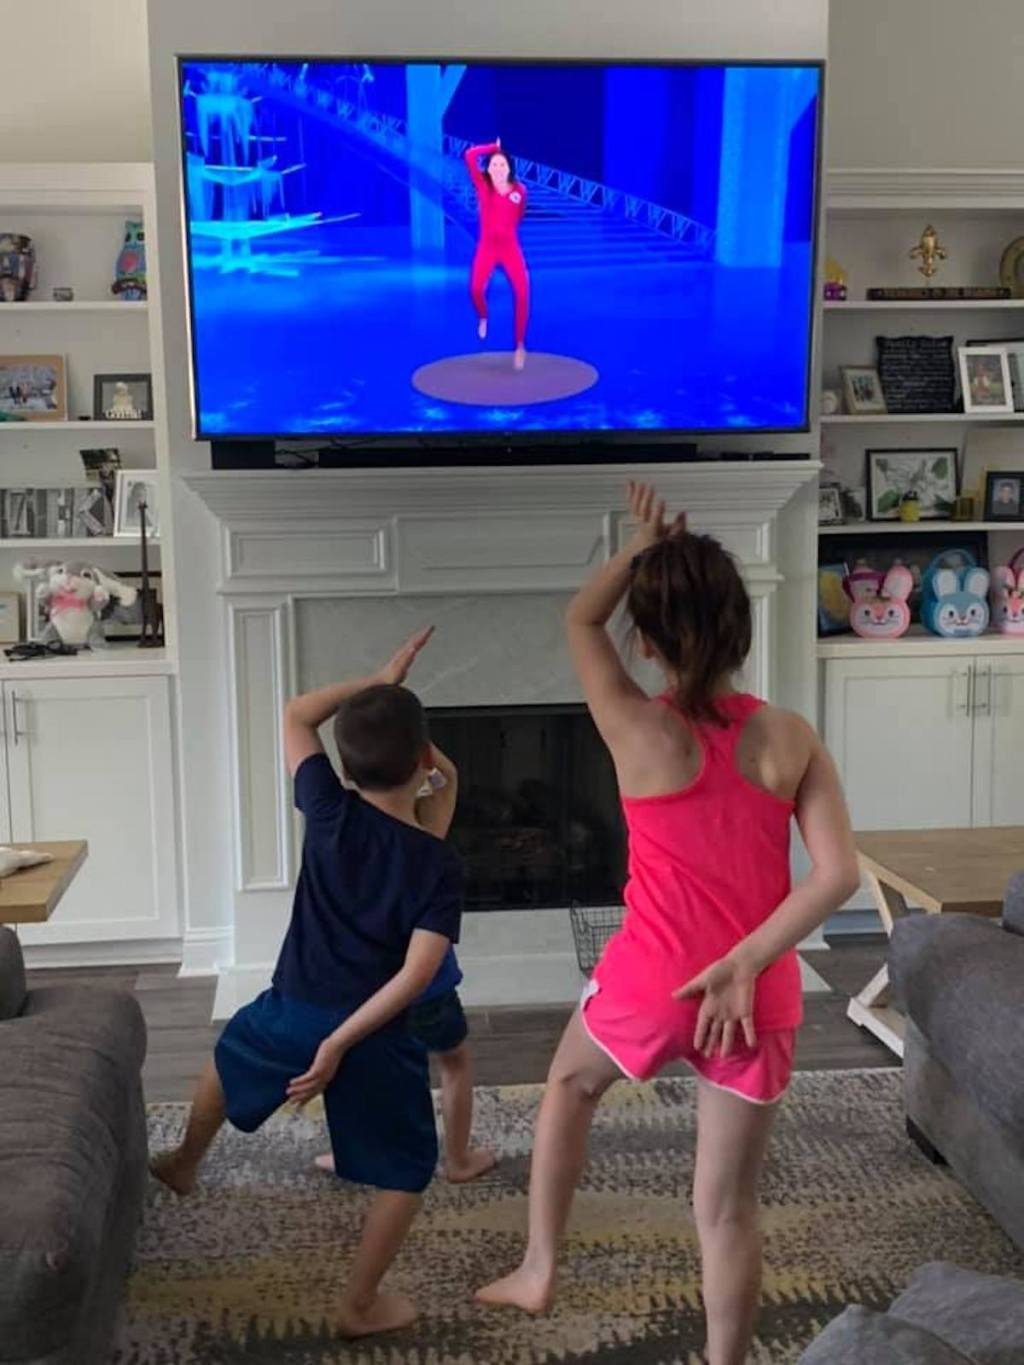 kids standing and posing in front of tv hanging over fireplace